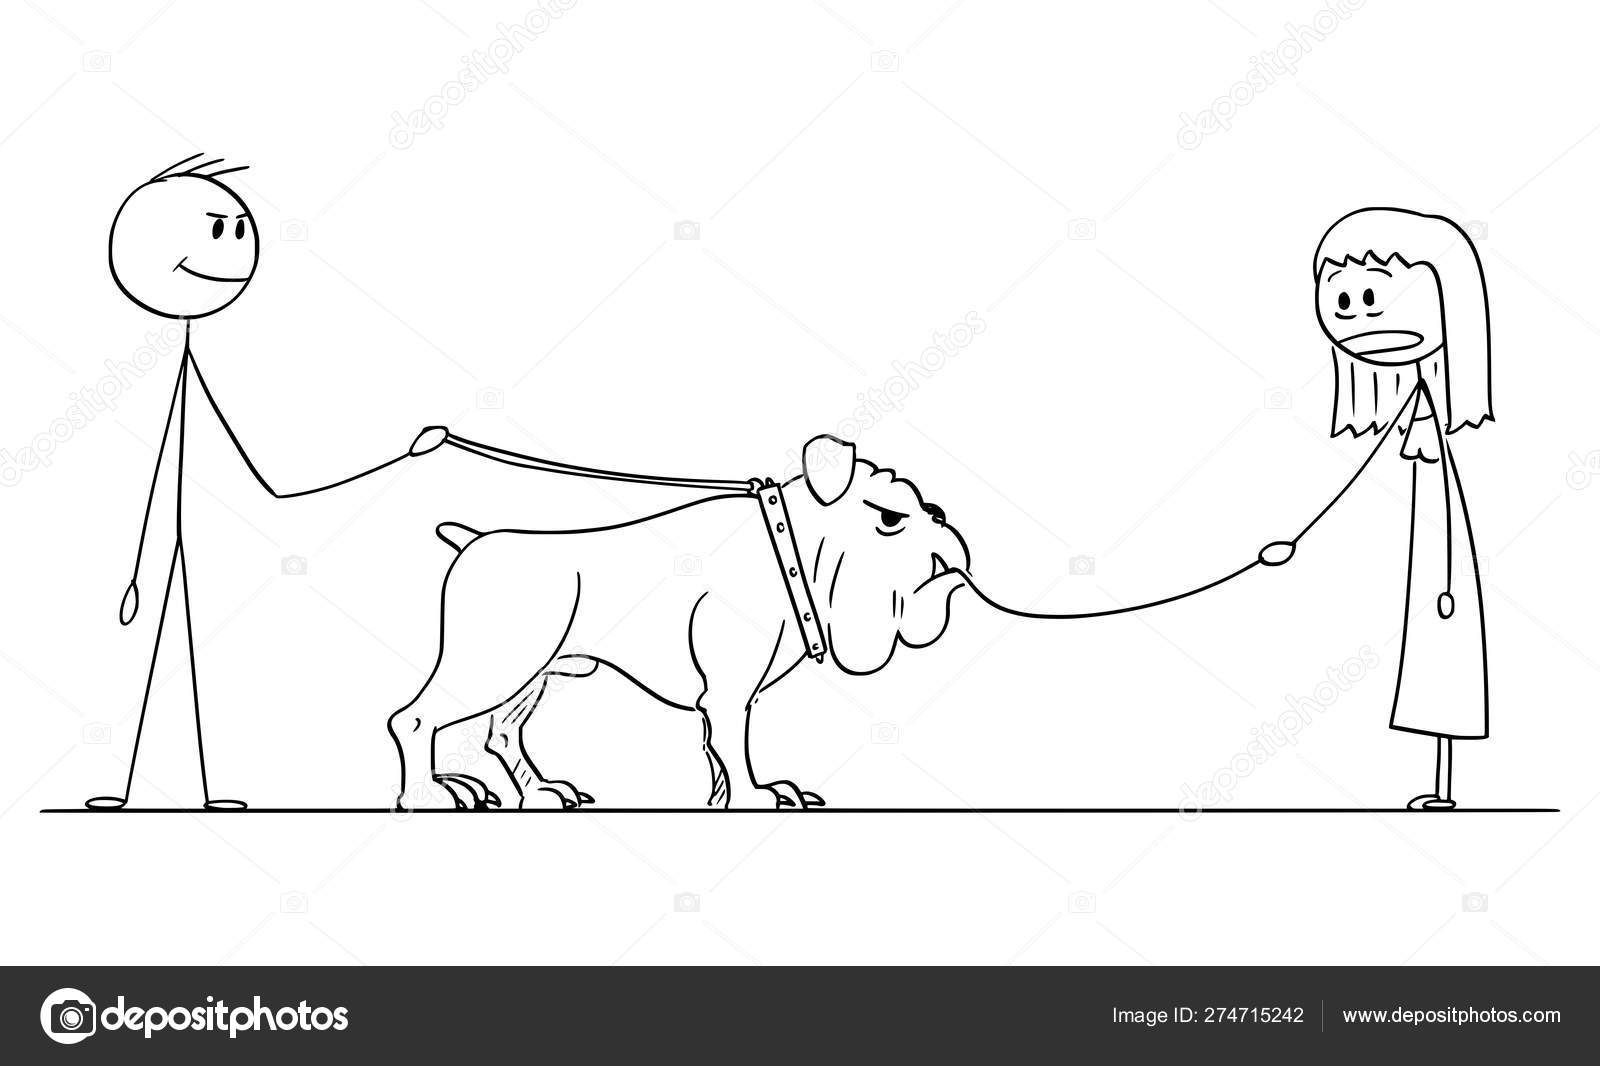 Vector Cartoon Of Man With Big Dog Who Eat Small Dog On Leash